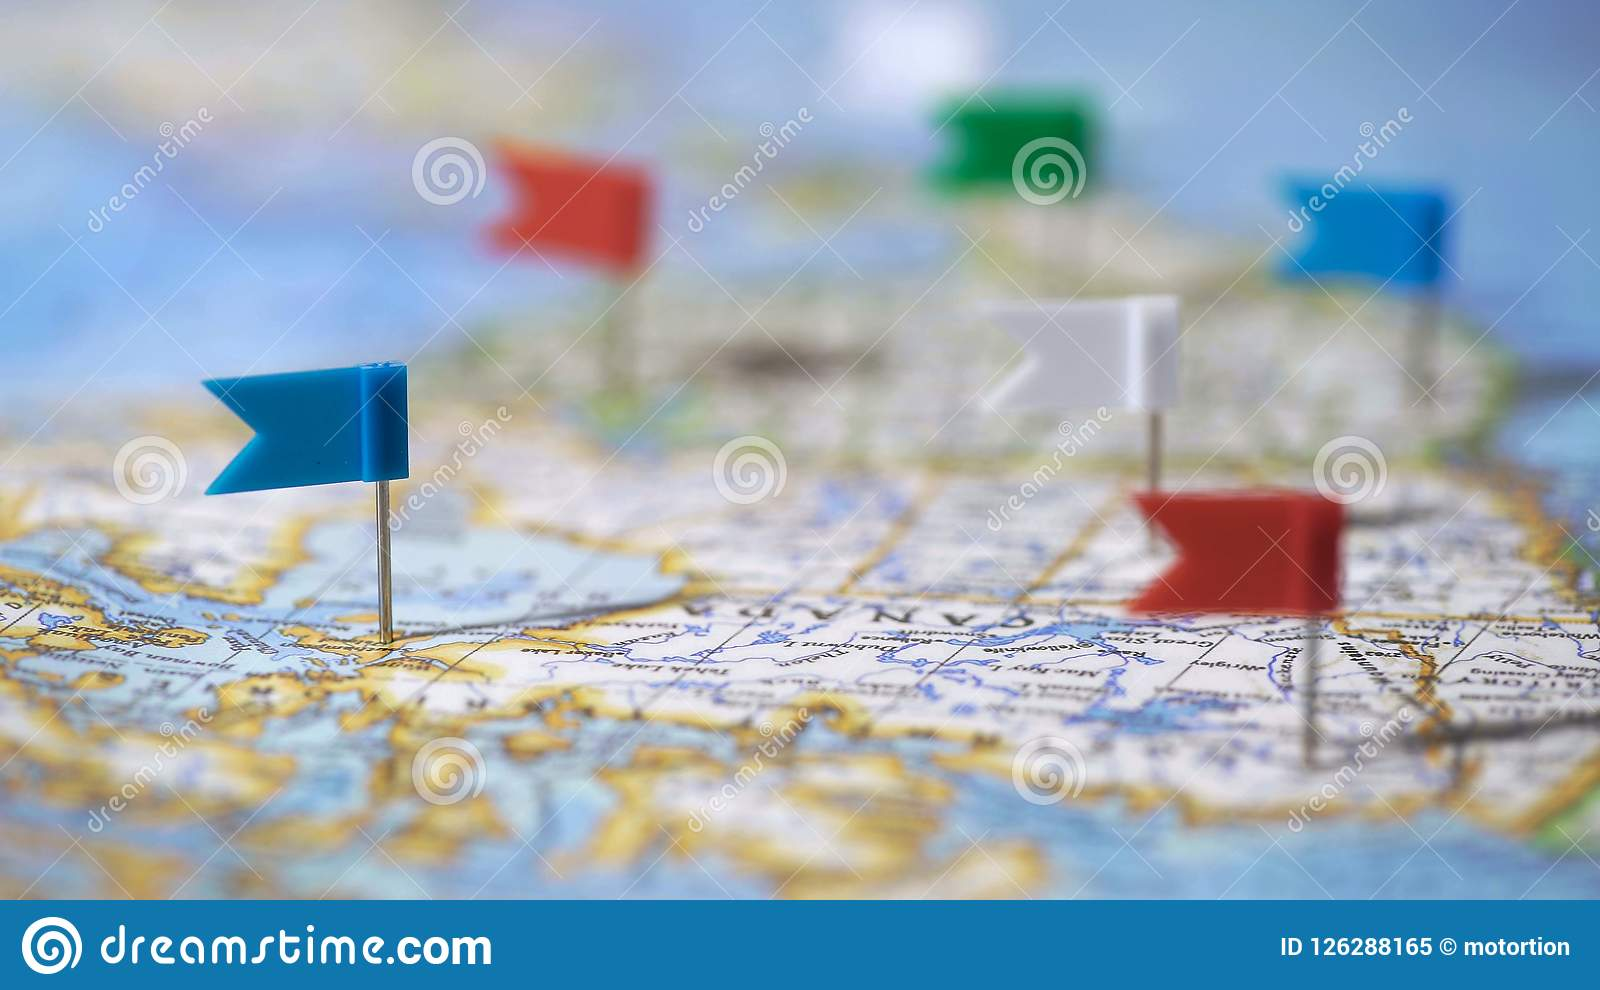 Travel Destinations In Canada Marked With Pins On World Map ... on canada town map, canada weather map, canada landscape map, canada topographic map, canada shipping map, canada territory map, canada language map, canada things to do, canada climate map, canada cultural map, canada exports map, canada provinces map, canada regions map, canada property map, canada airlines map, canada tourist attractions, canada road map, canada geography map, canada city map, canada transportation map,